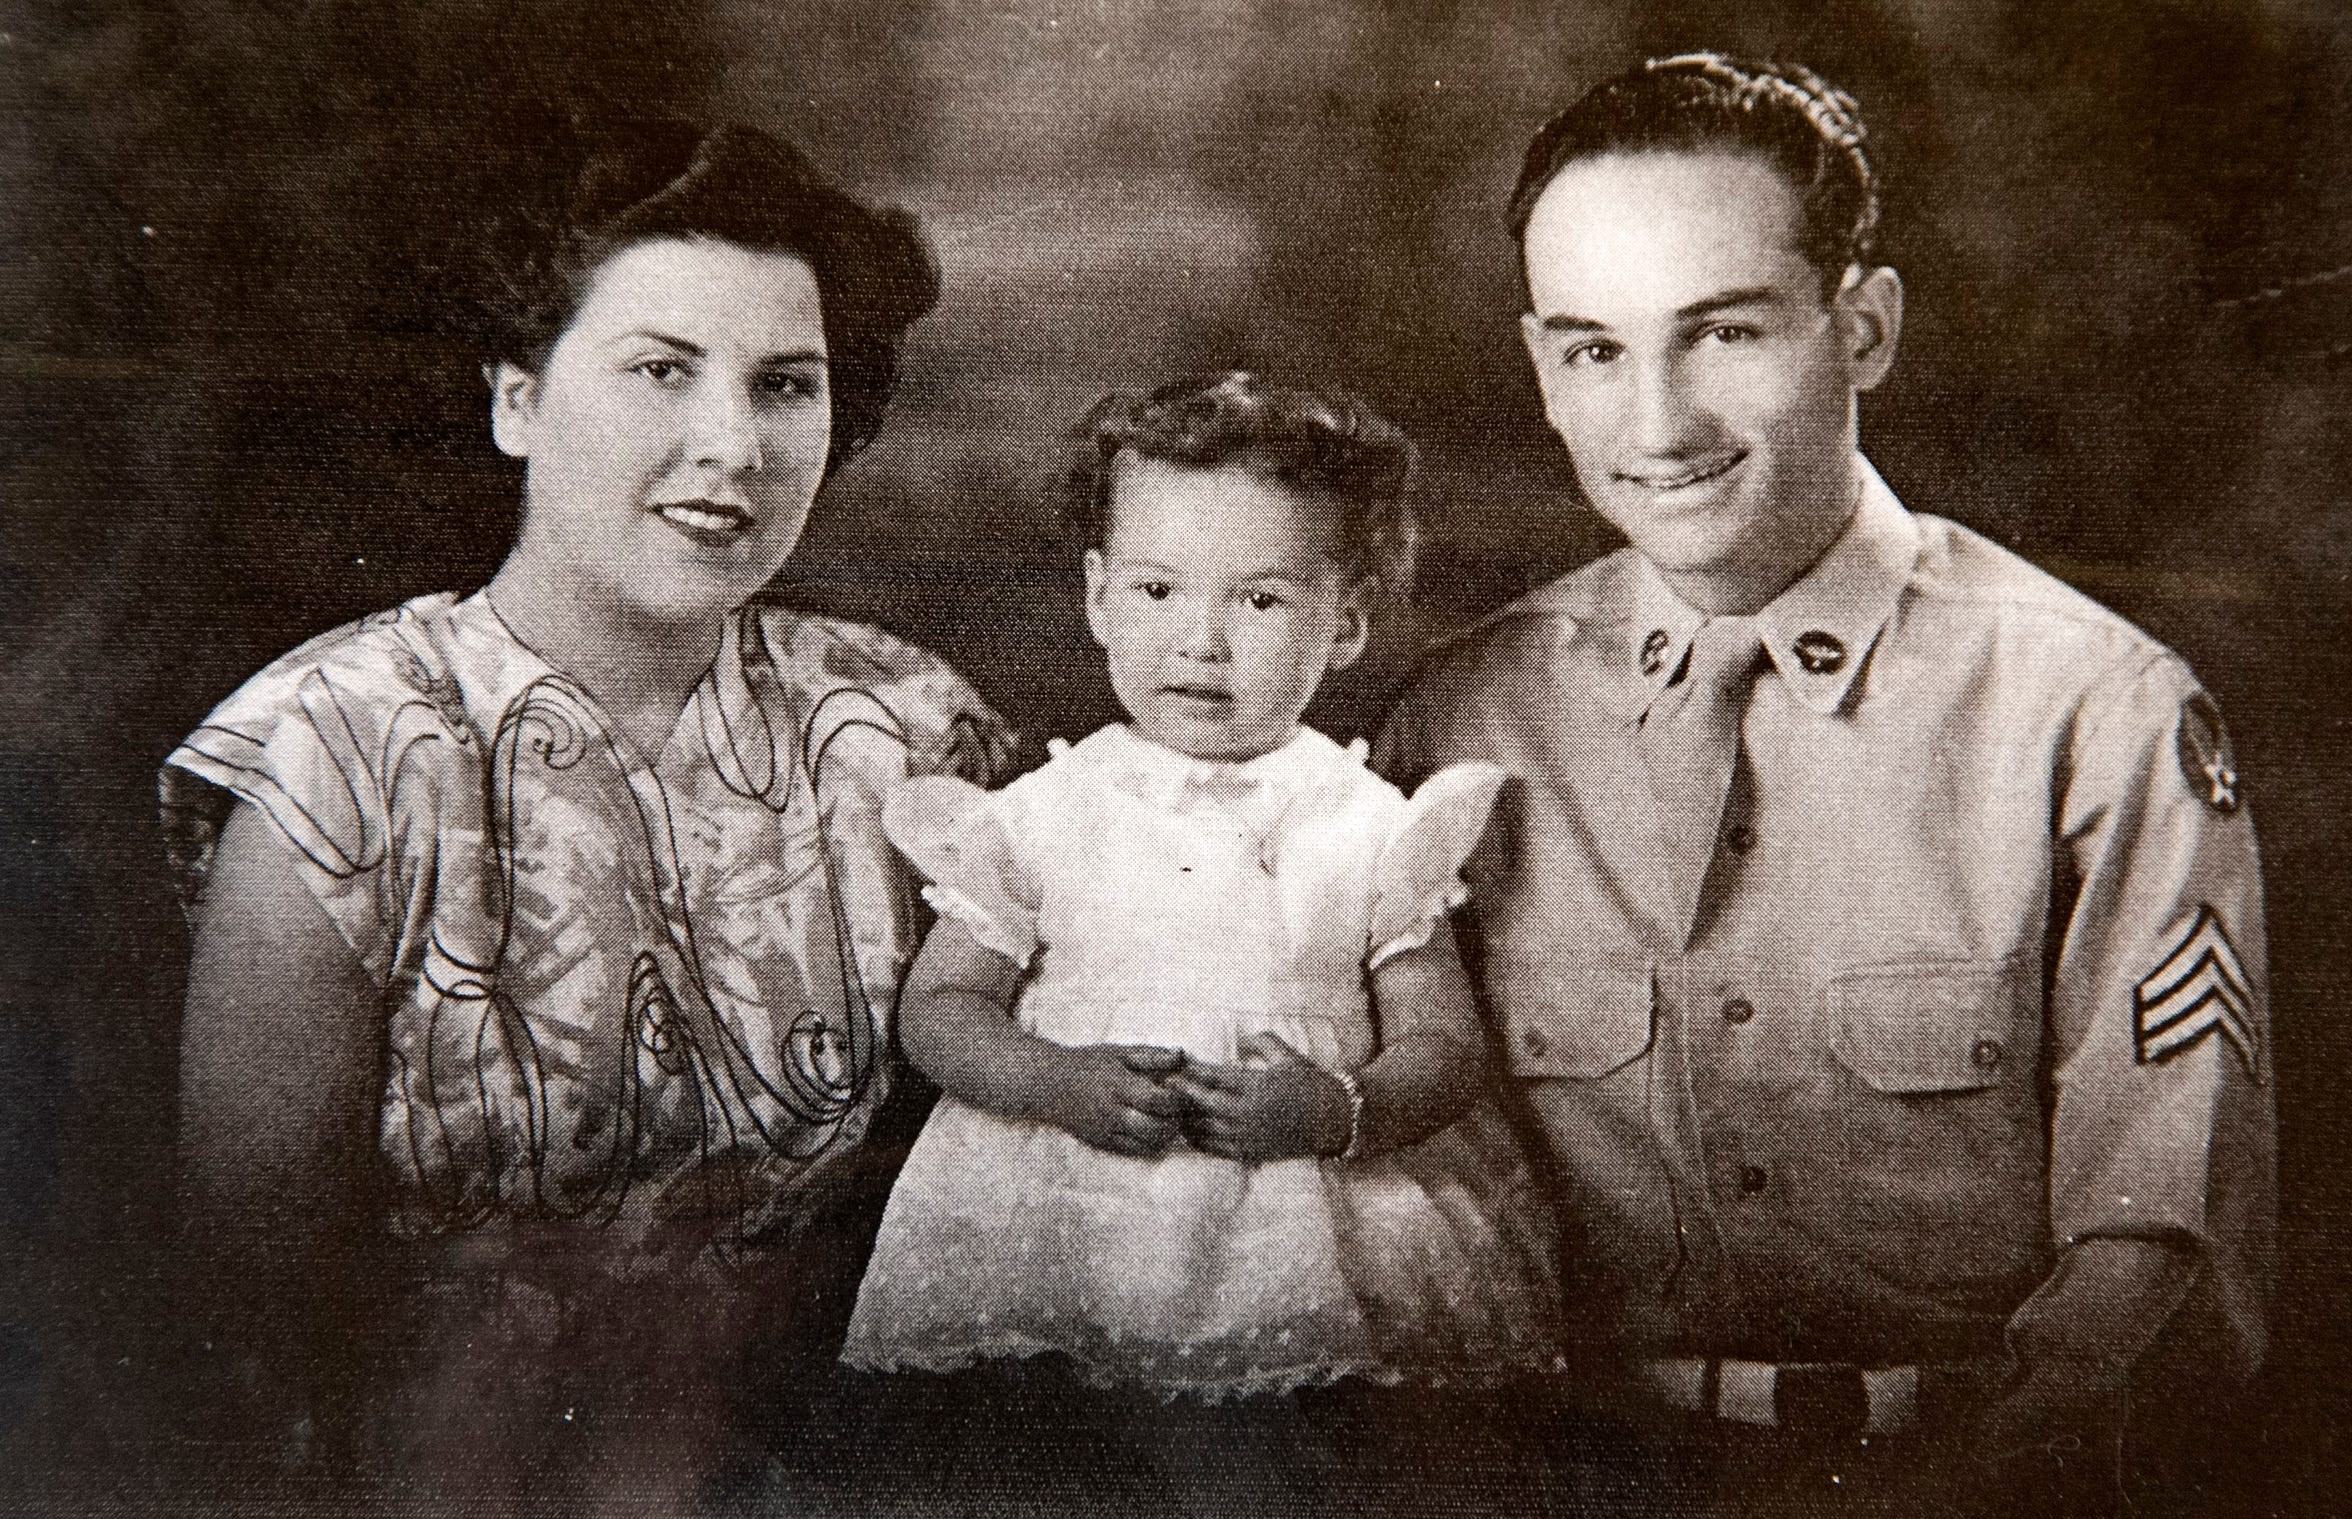 A portrait of the Campos family (from left) Jovita, Jennie and Joe in the late 1940s in Miami, Ariz. It is believed that Staff Sgt. Joe Campos, a gunner on a B-26 bomber was likely the first American killed in the Korean War when his plane went down in the Yellow Sea on June 28, 1950.